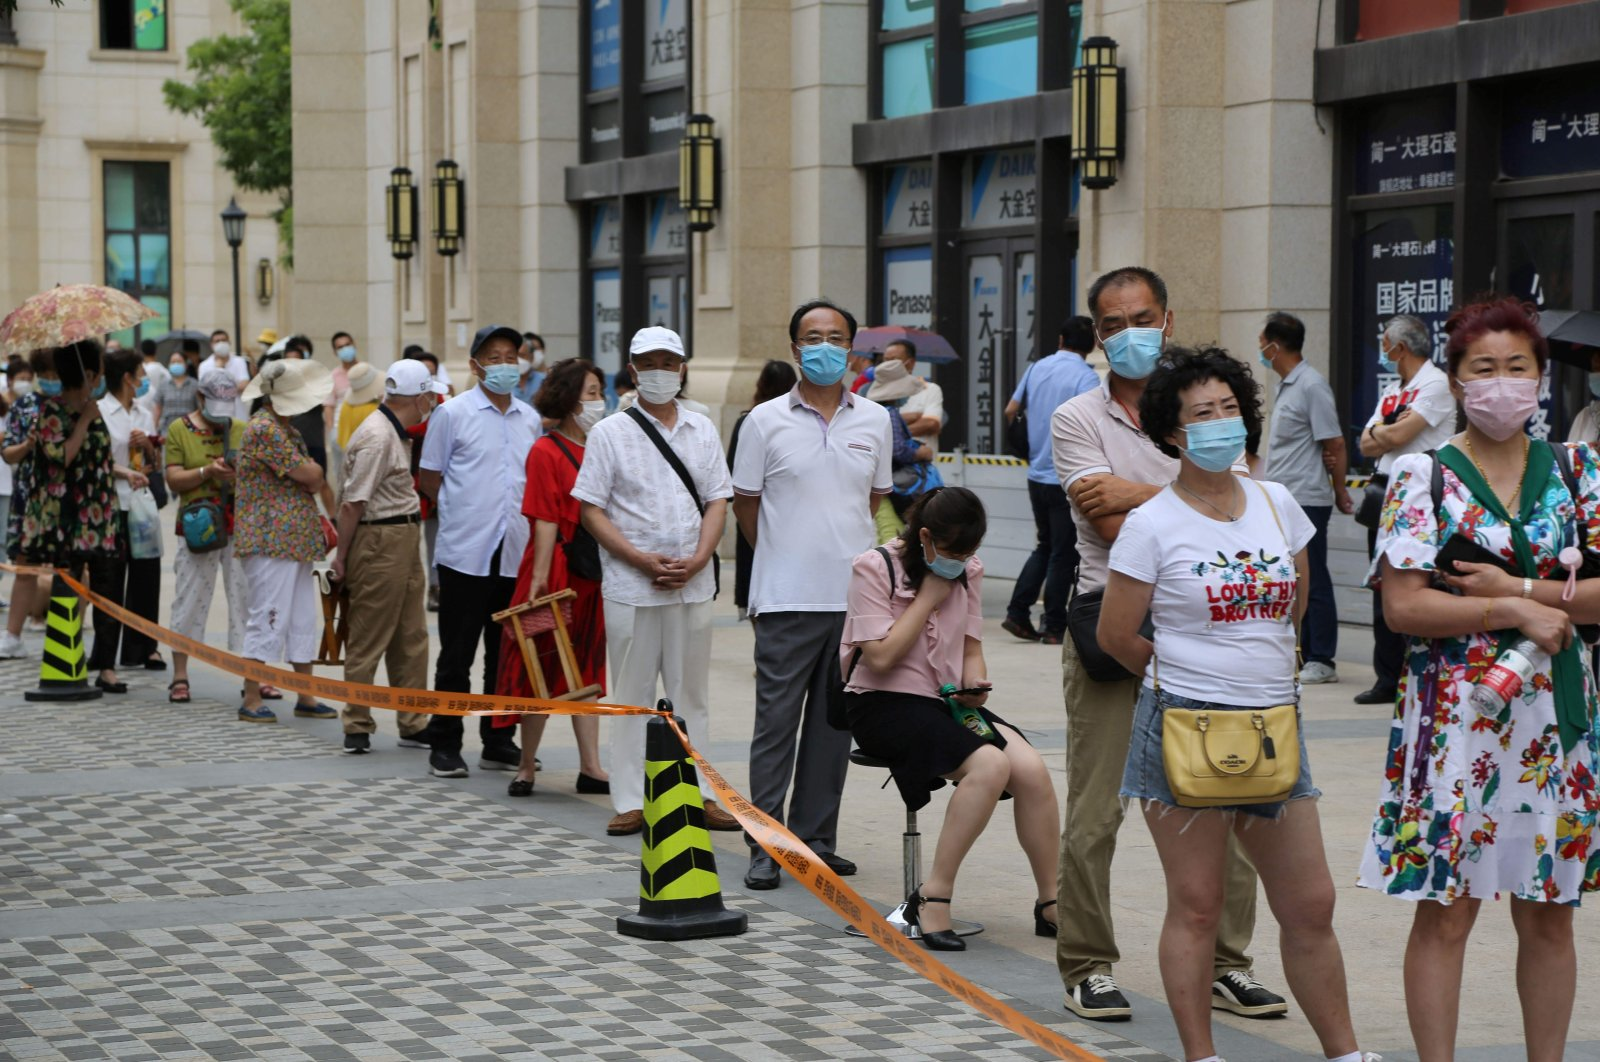 People line up to undergo COVID-19 tests at a makeshift testing center in Dalian, in China's northeast Liaoning province, July 27, 2020. (AFP Photo)